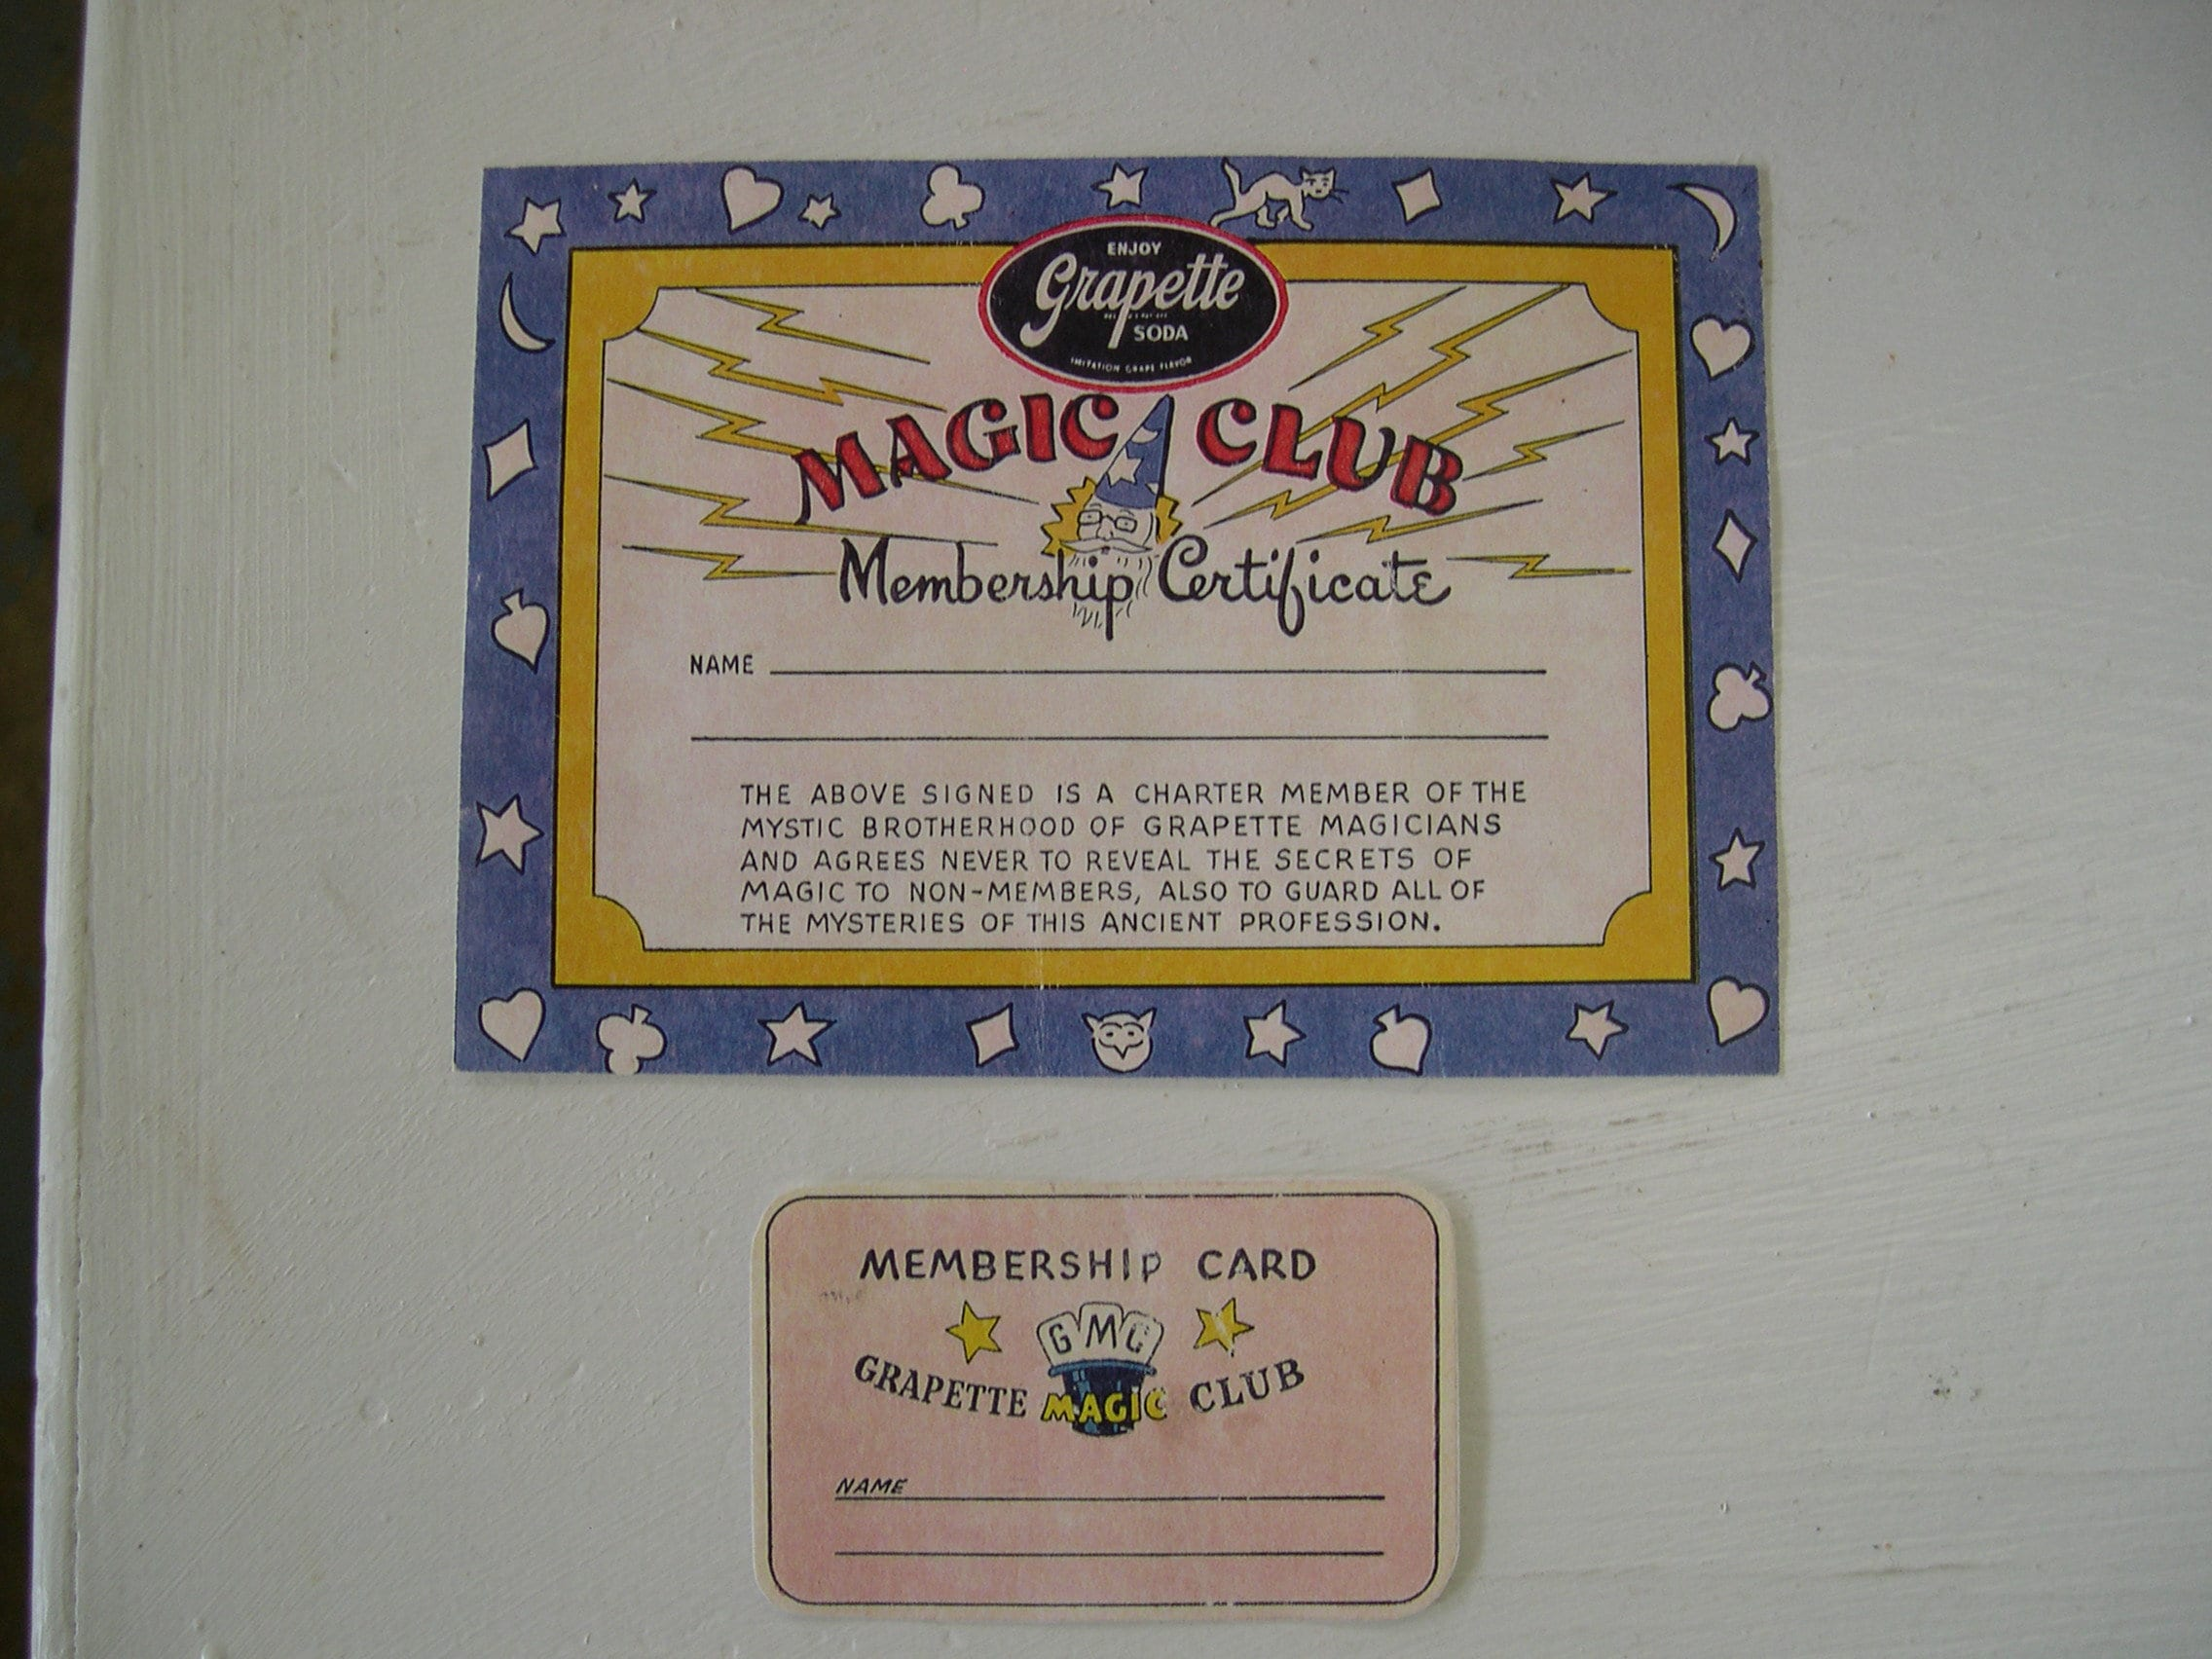 Vintage Grapette Magic Club Membership Certificate